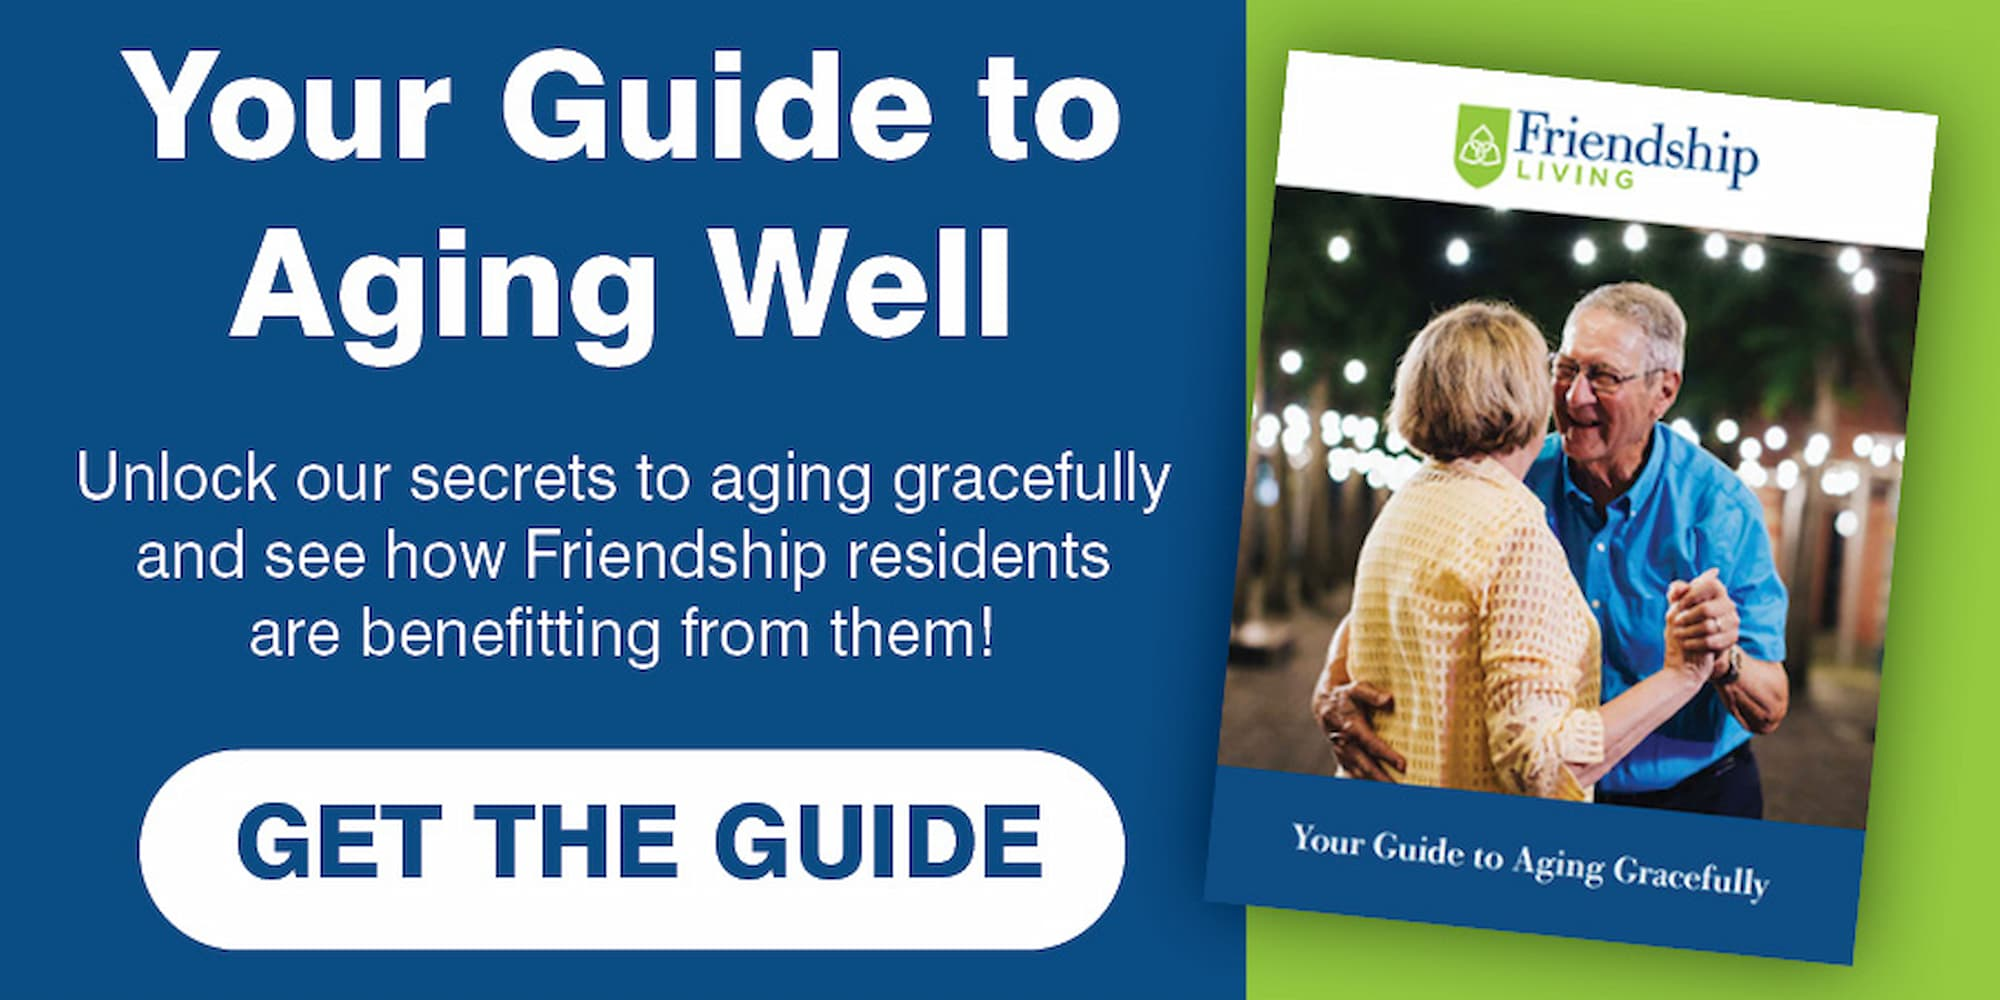 Your Guide to Aging Well, Document containing aging secrets, couple dancing